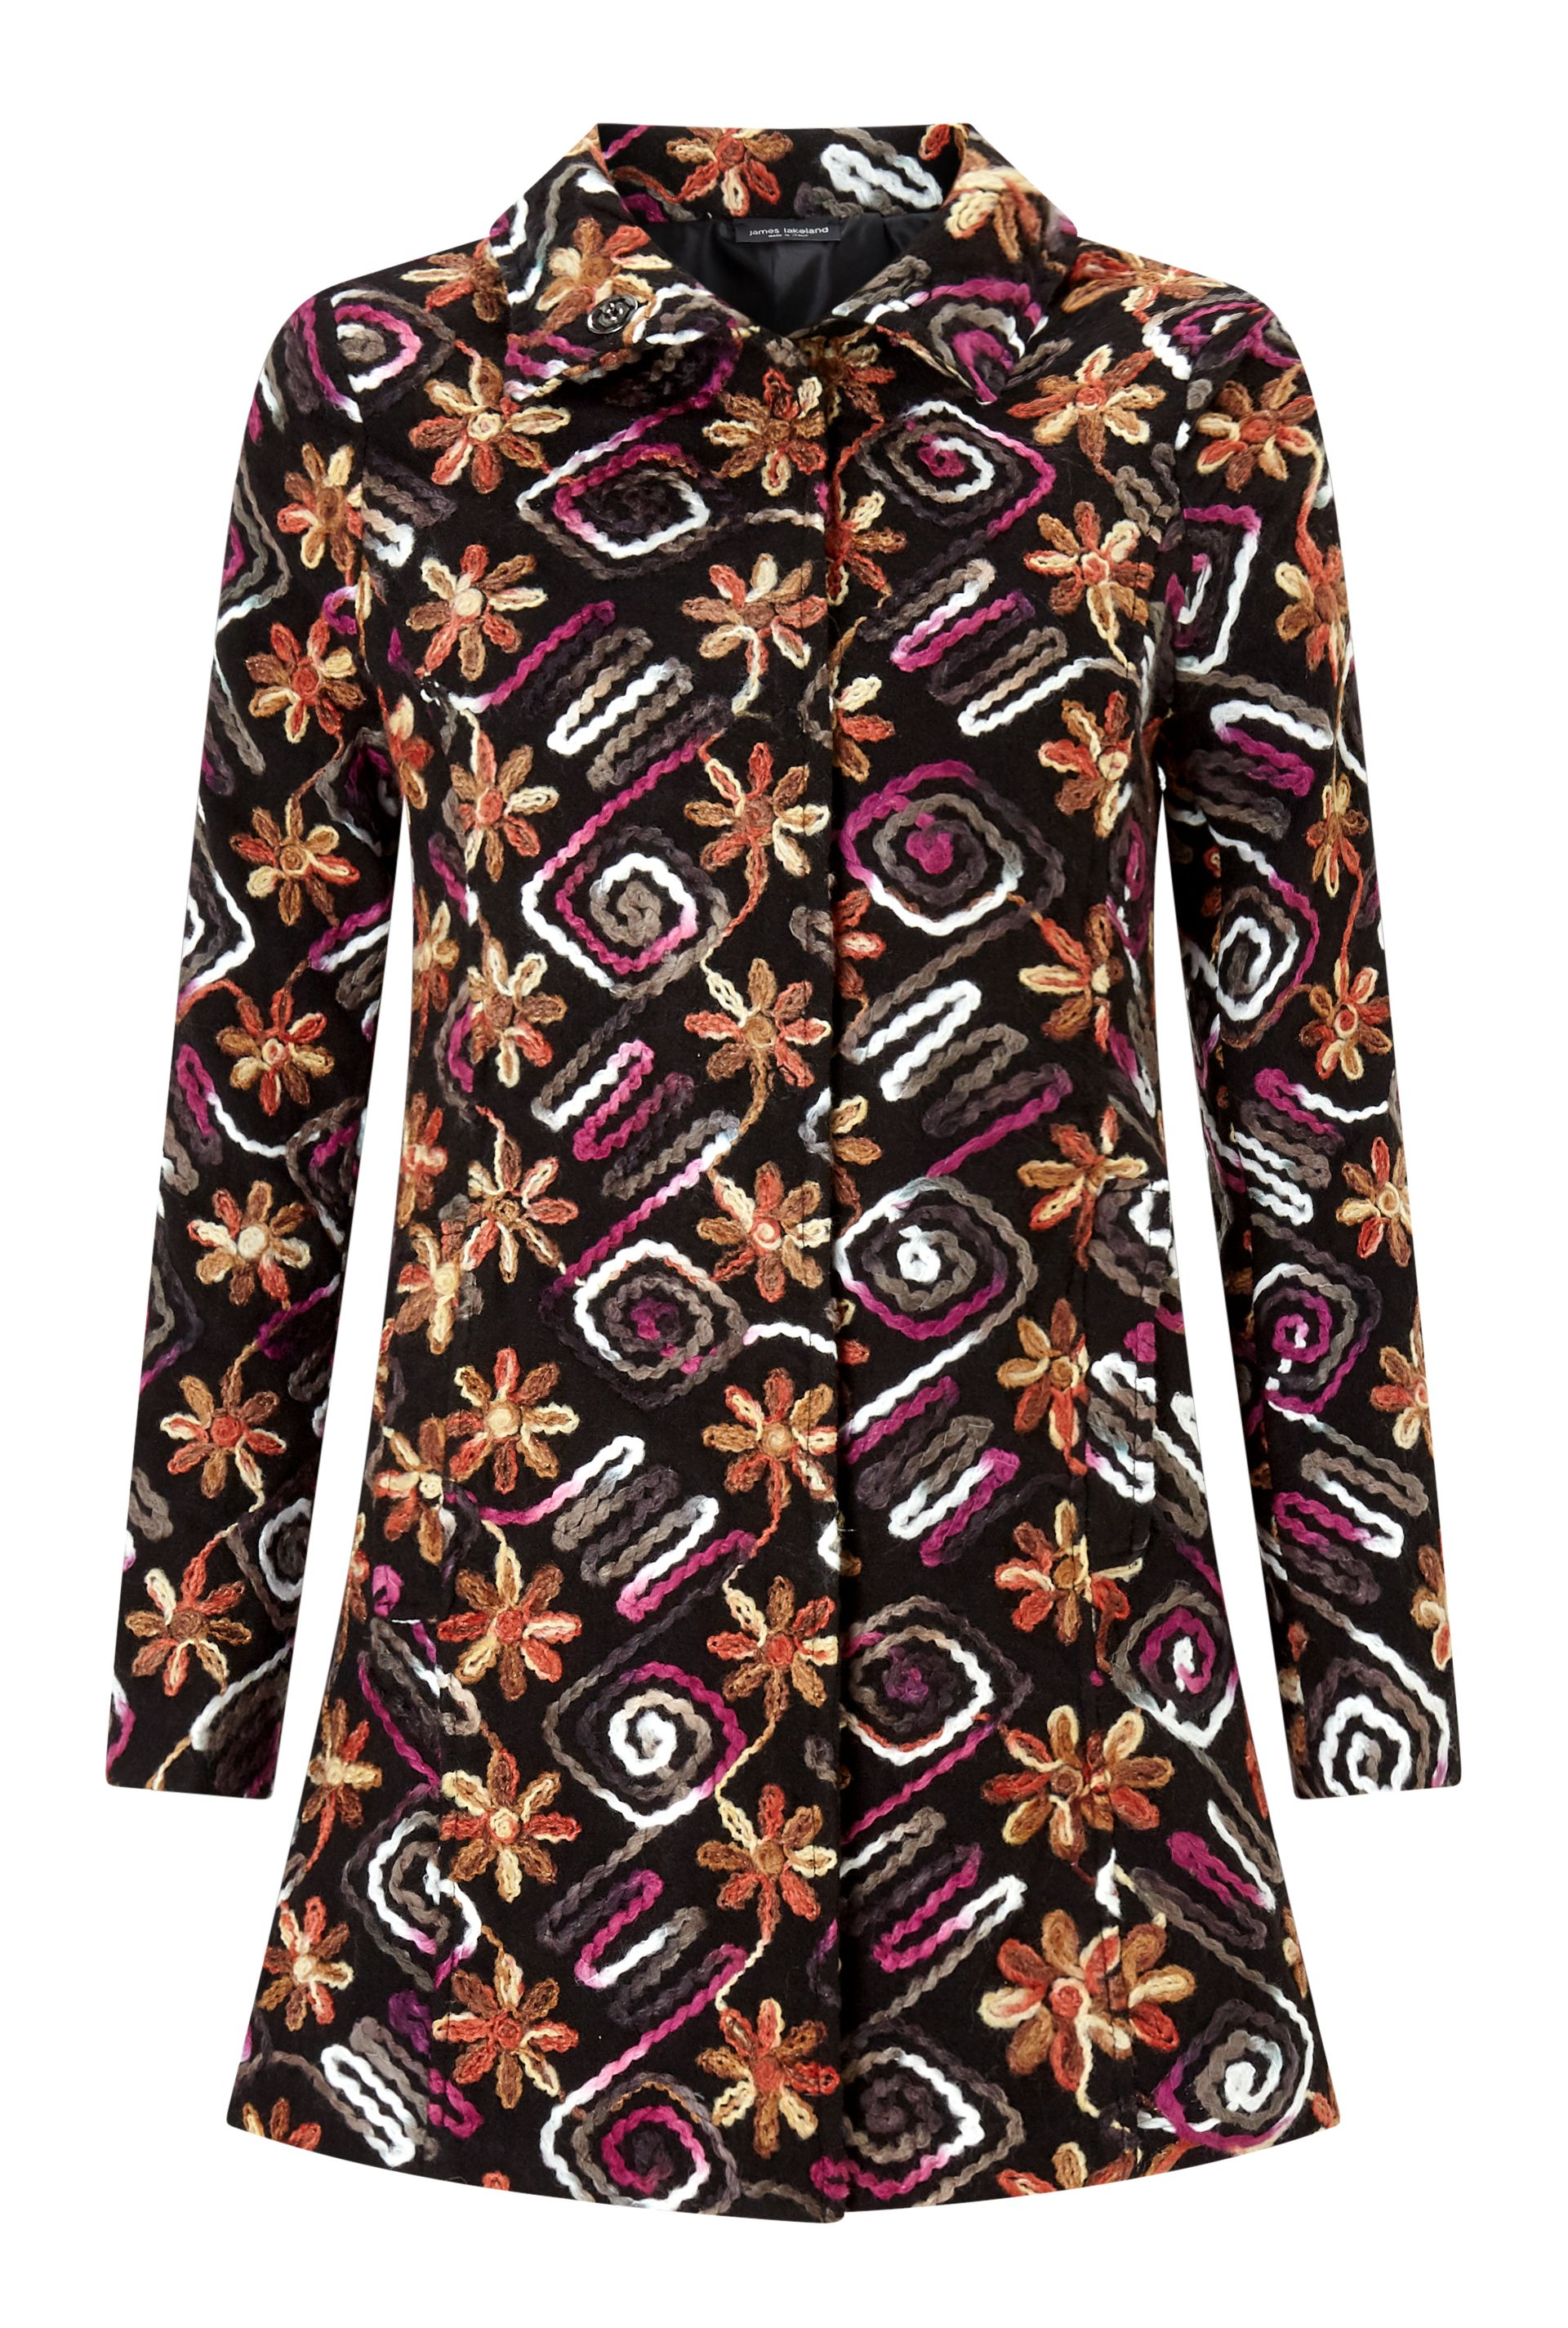 James Lakeland Multi Flower Coat, Black